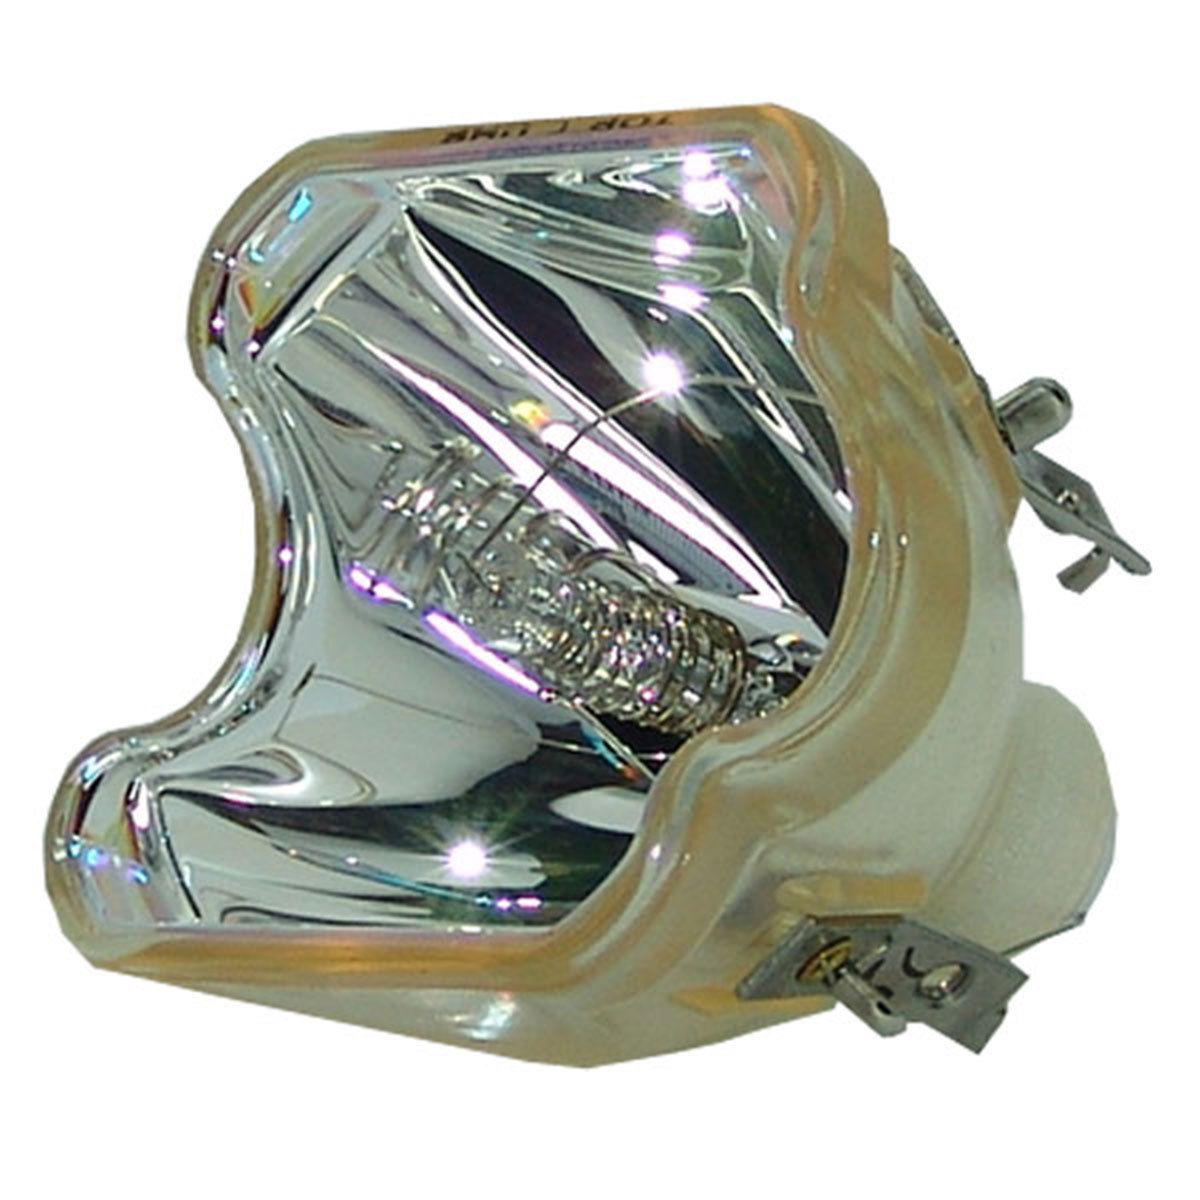 DT00671 DT-00671 for HITACHI ED-X3450 CPS335 CPX335 CP-X340 CP-X345 ED-S3350 ED-X3400 CPX3350 CP-X340 Projector Lamp Bulb